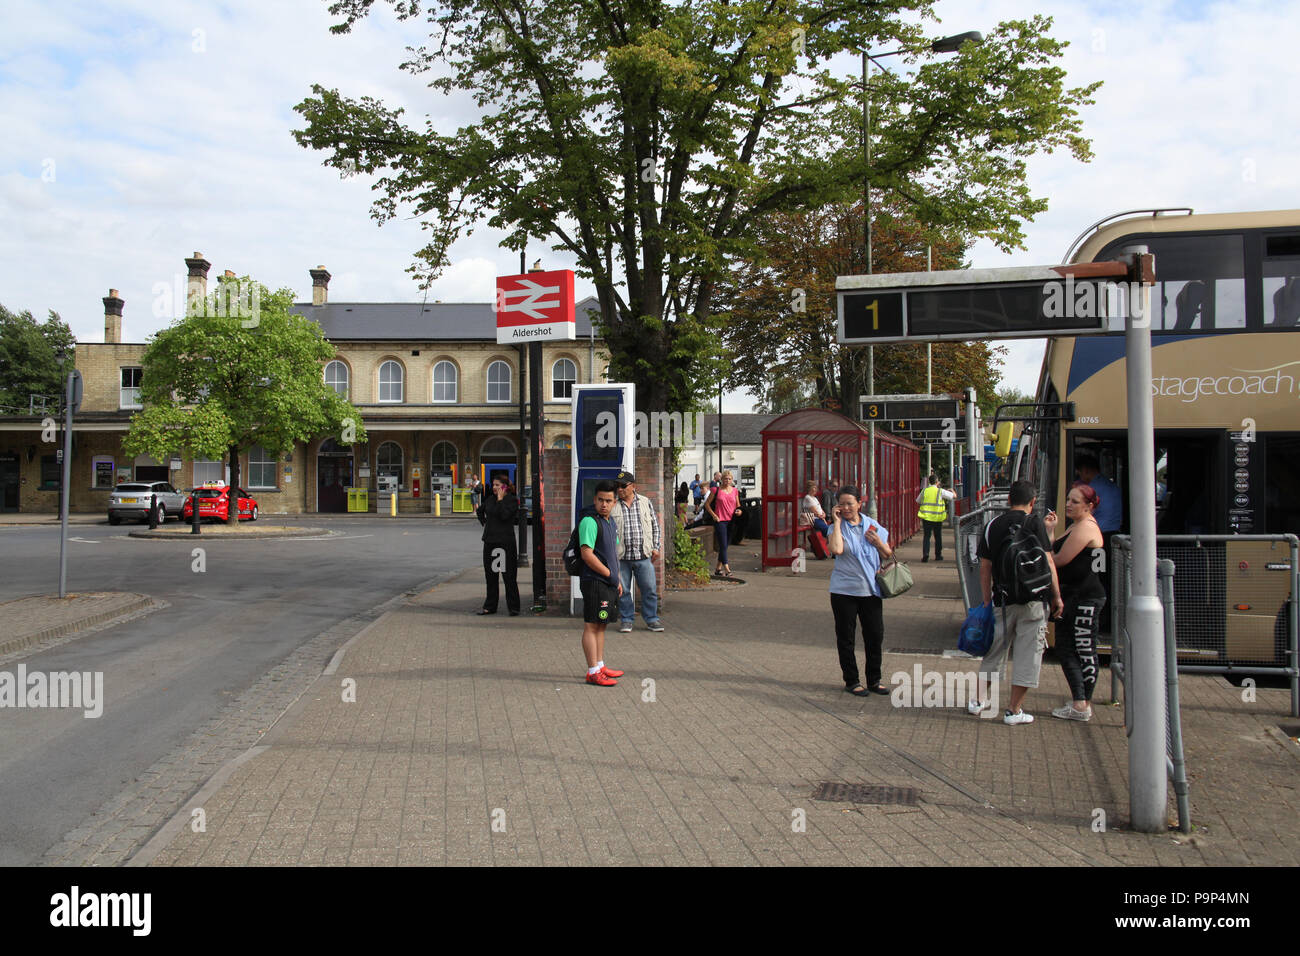 the bus and train station in aldershot england stock photo